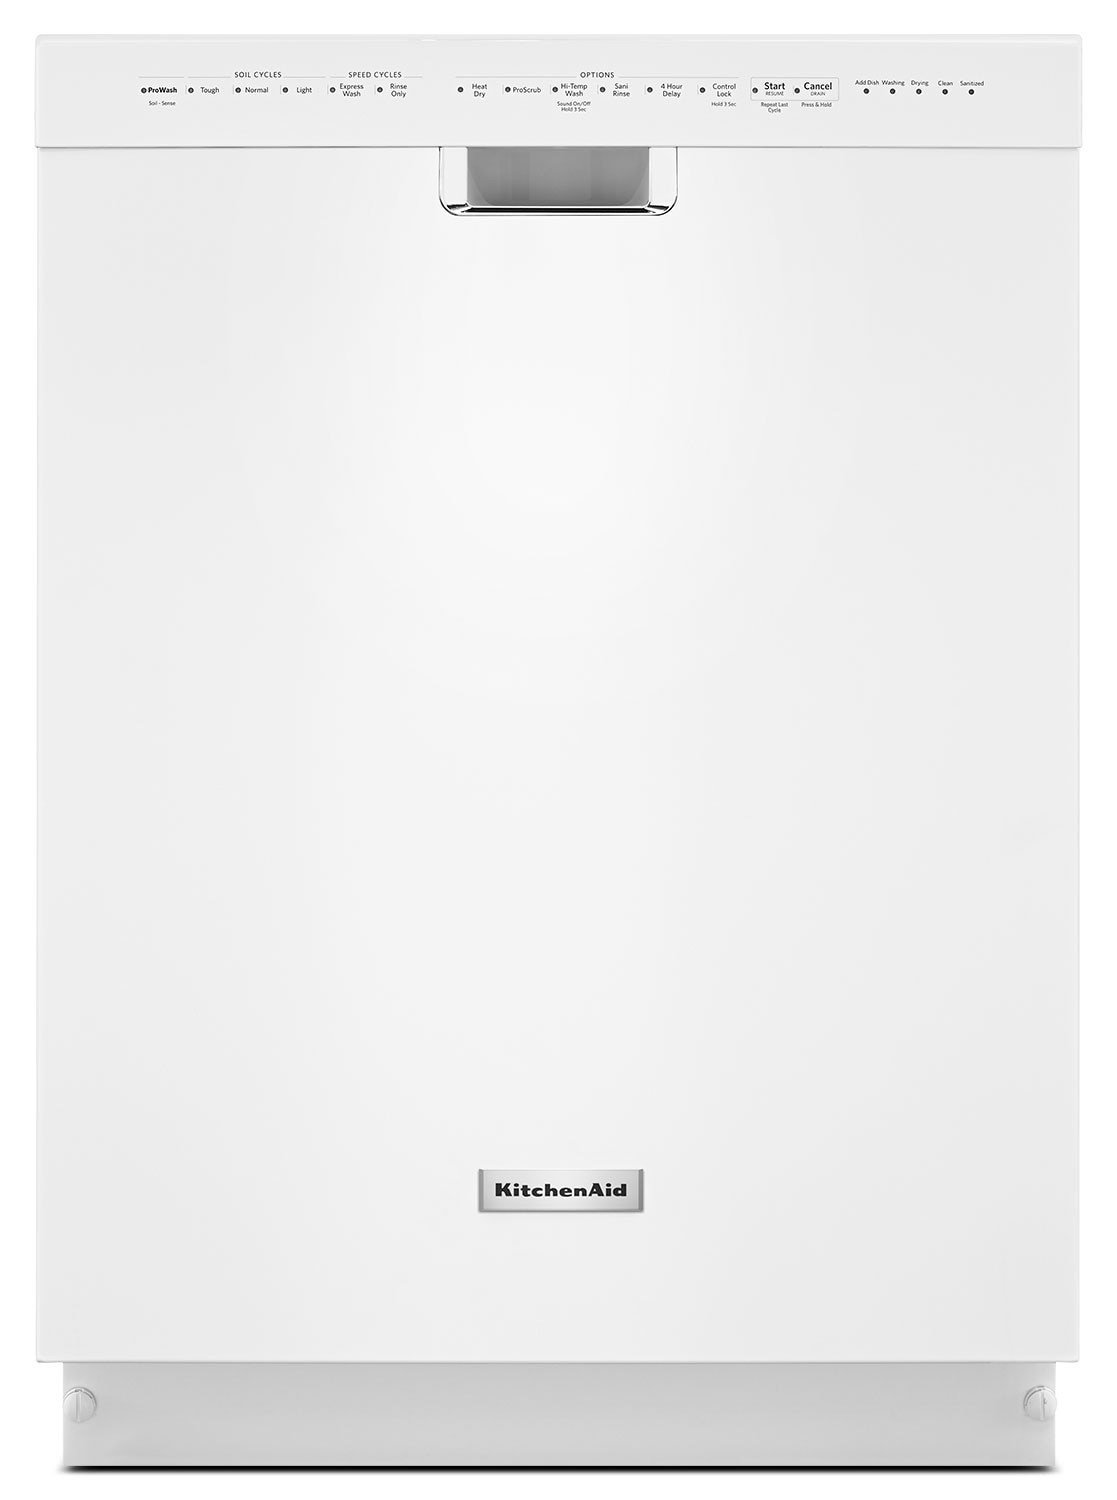 Clean-Up - KitchenAid White Dishwasher - KDFE204EWH